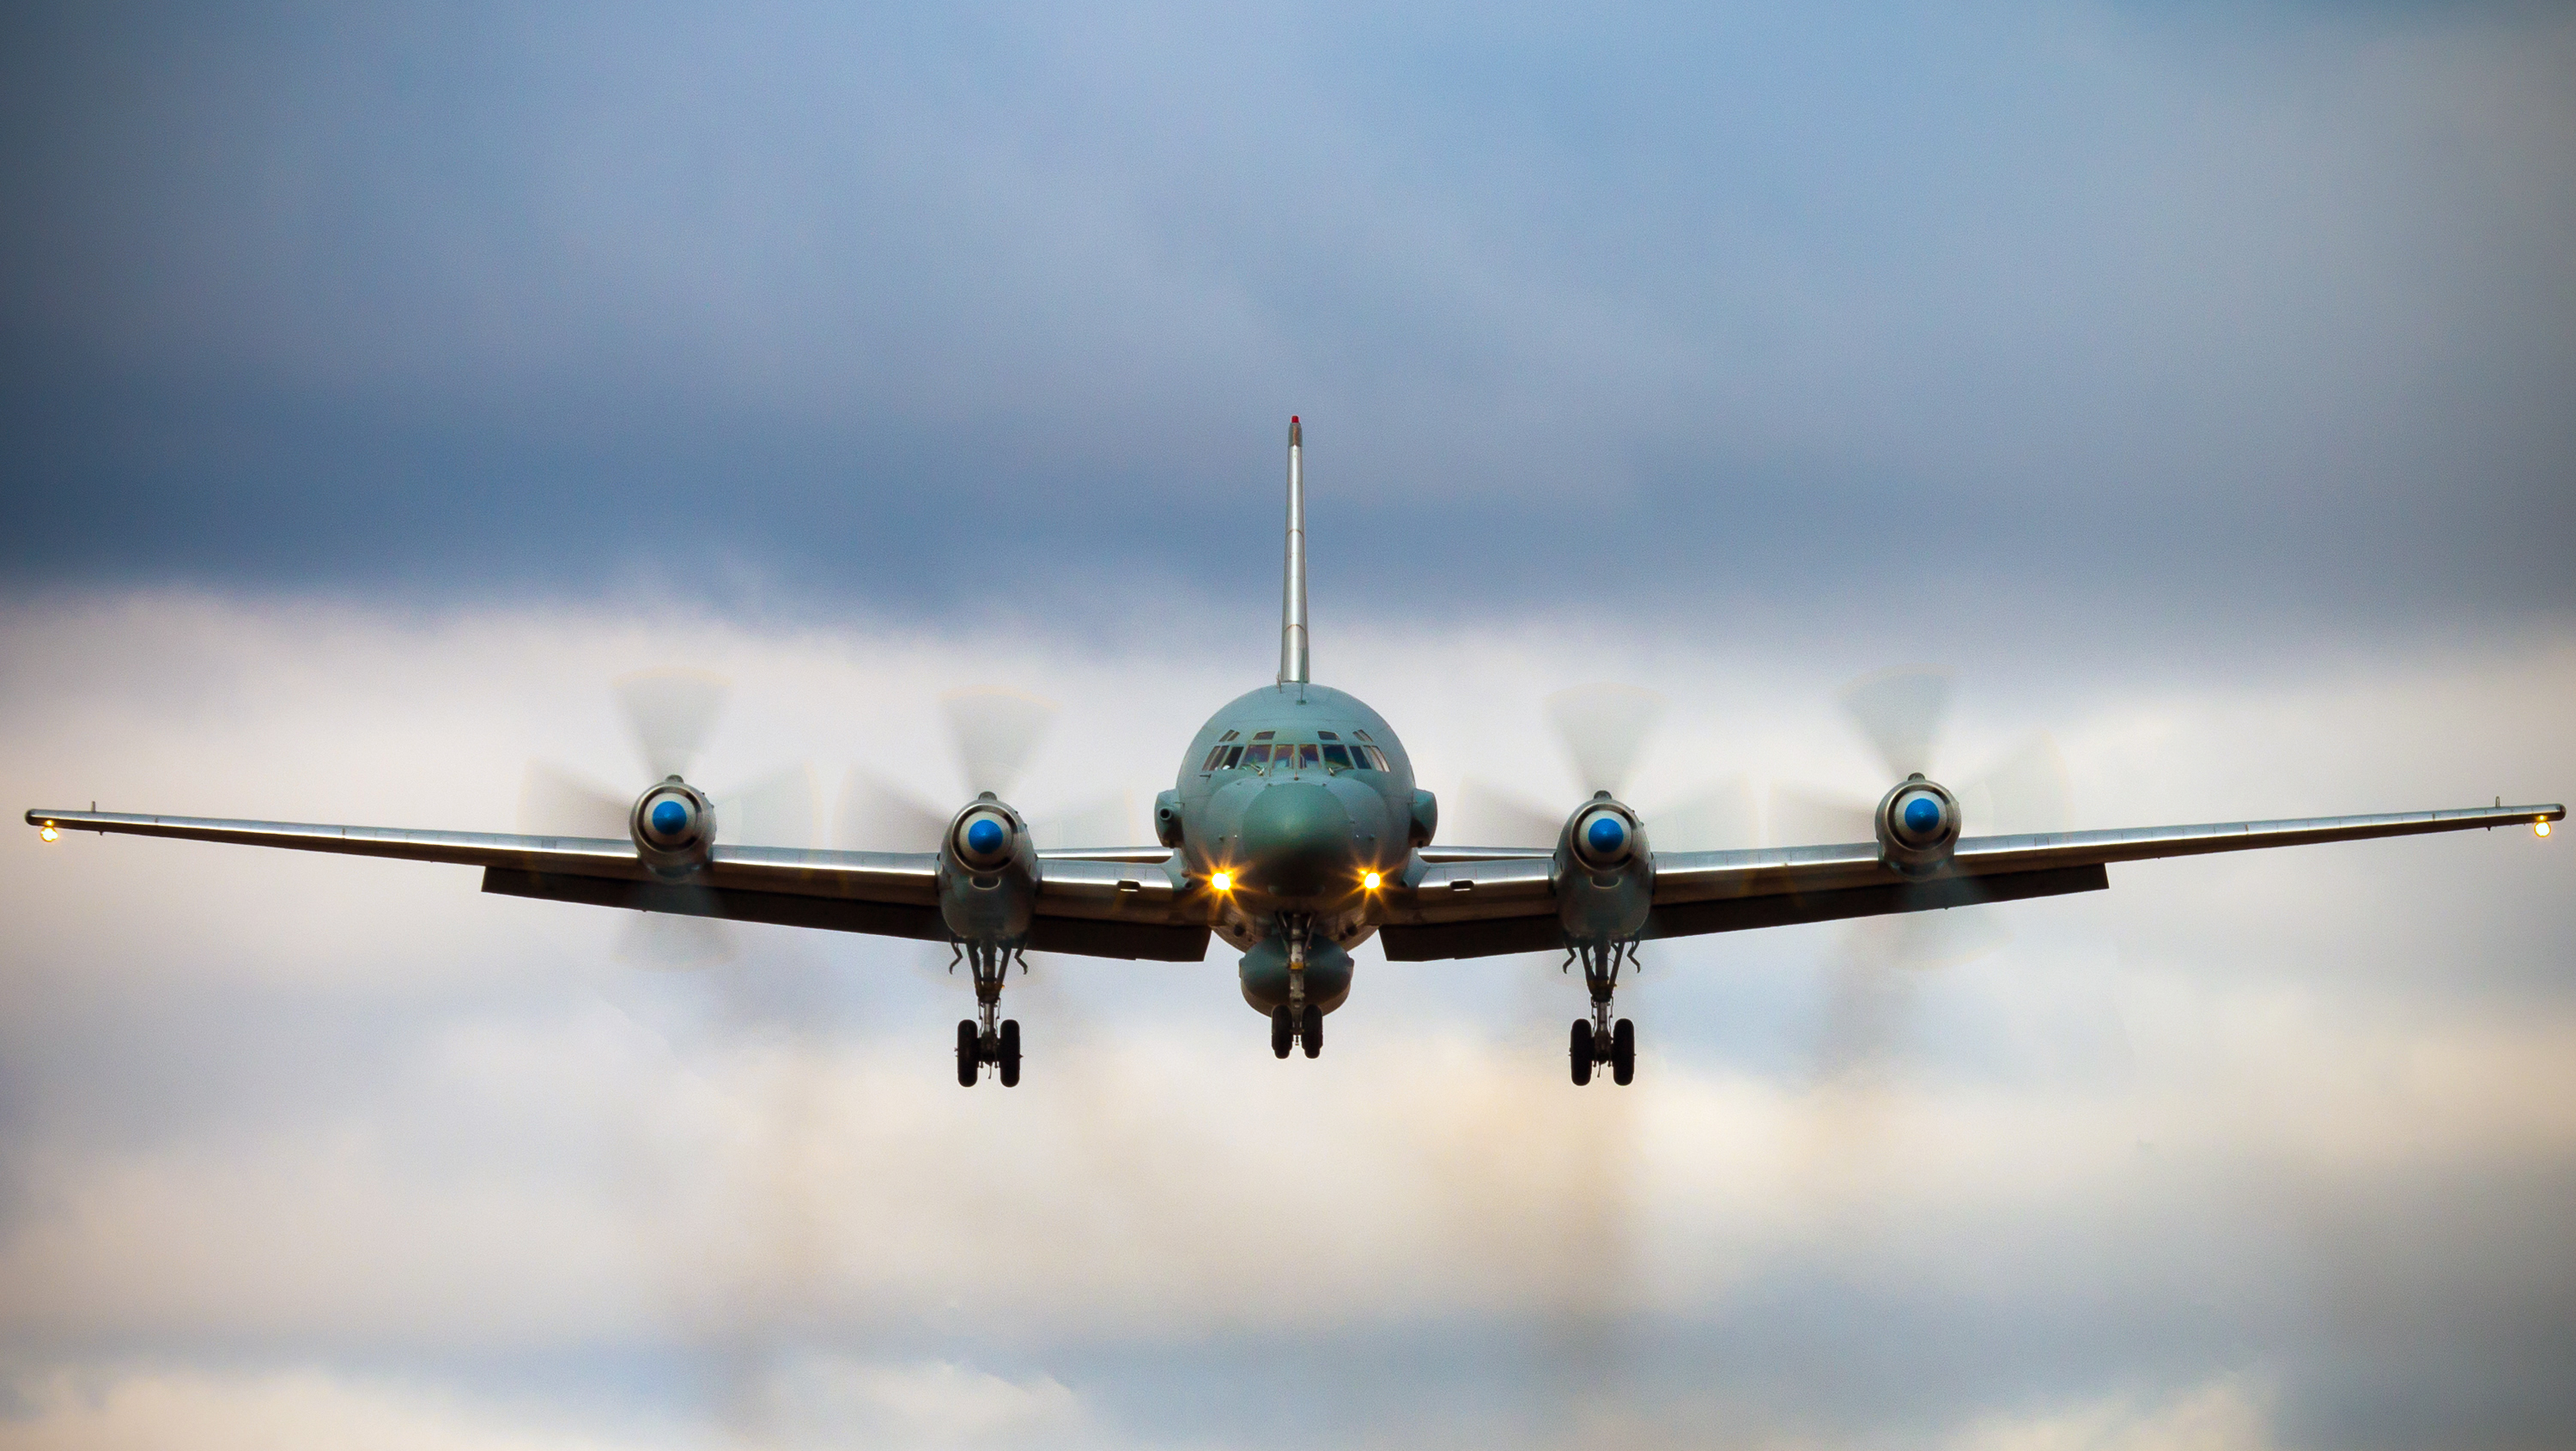 Russian Il-20 aircraft mistakenly shot down by Syrian air defense 19